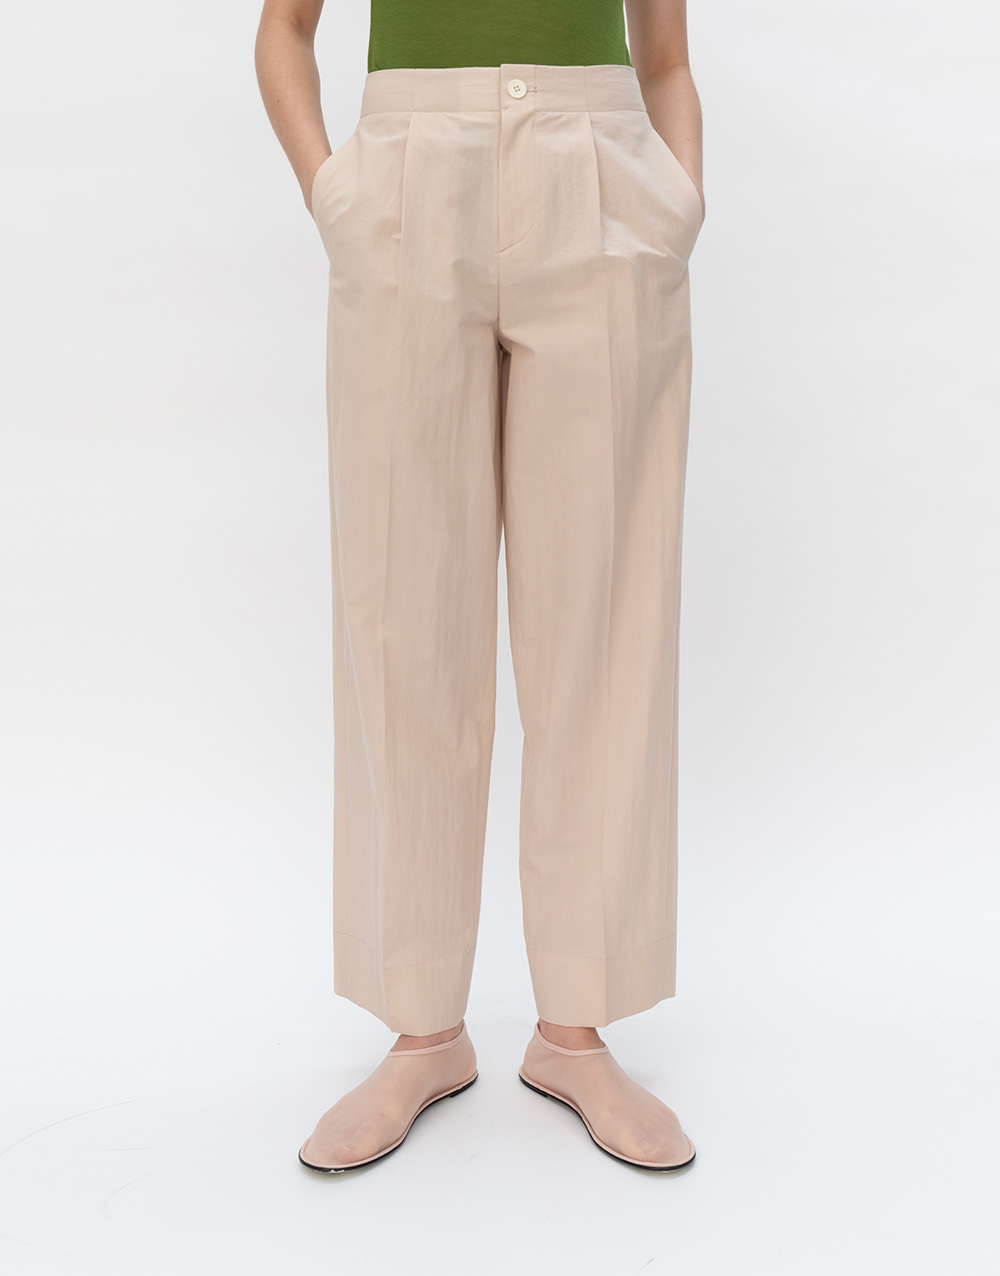 GBH APPAREL ADULT  Compact Pants PALE BEIGE